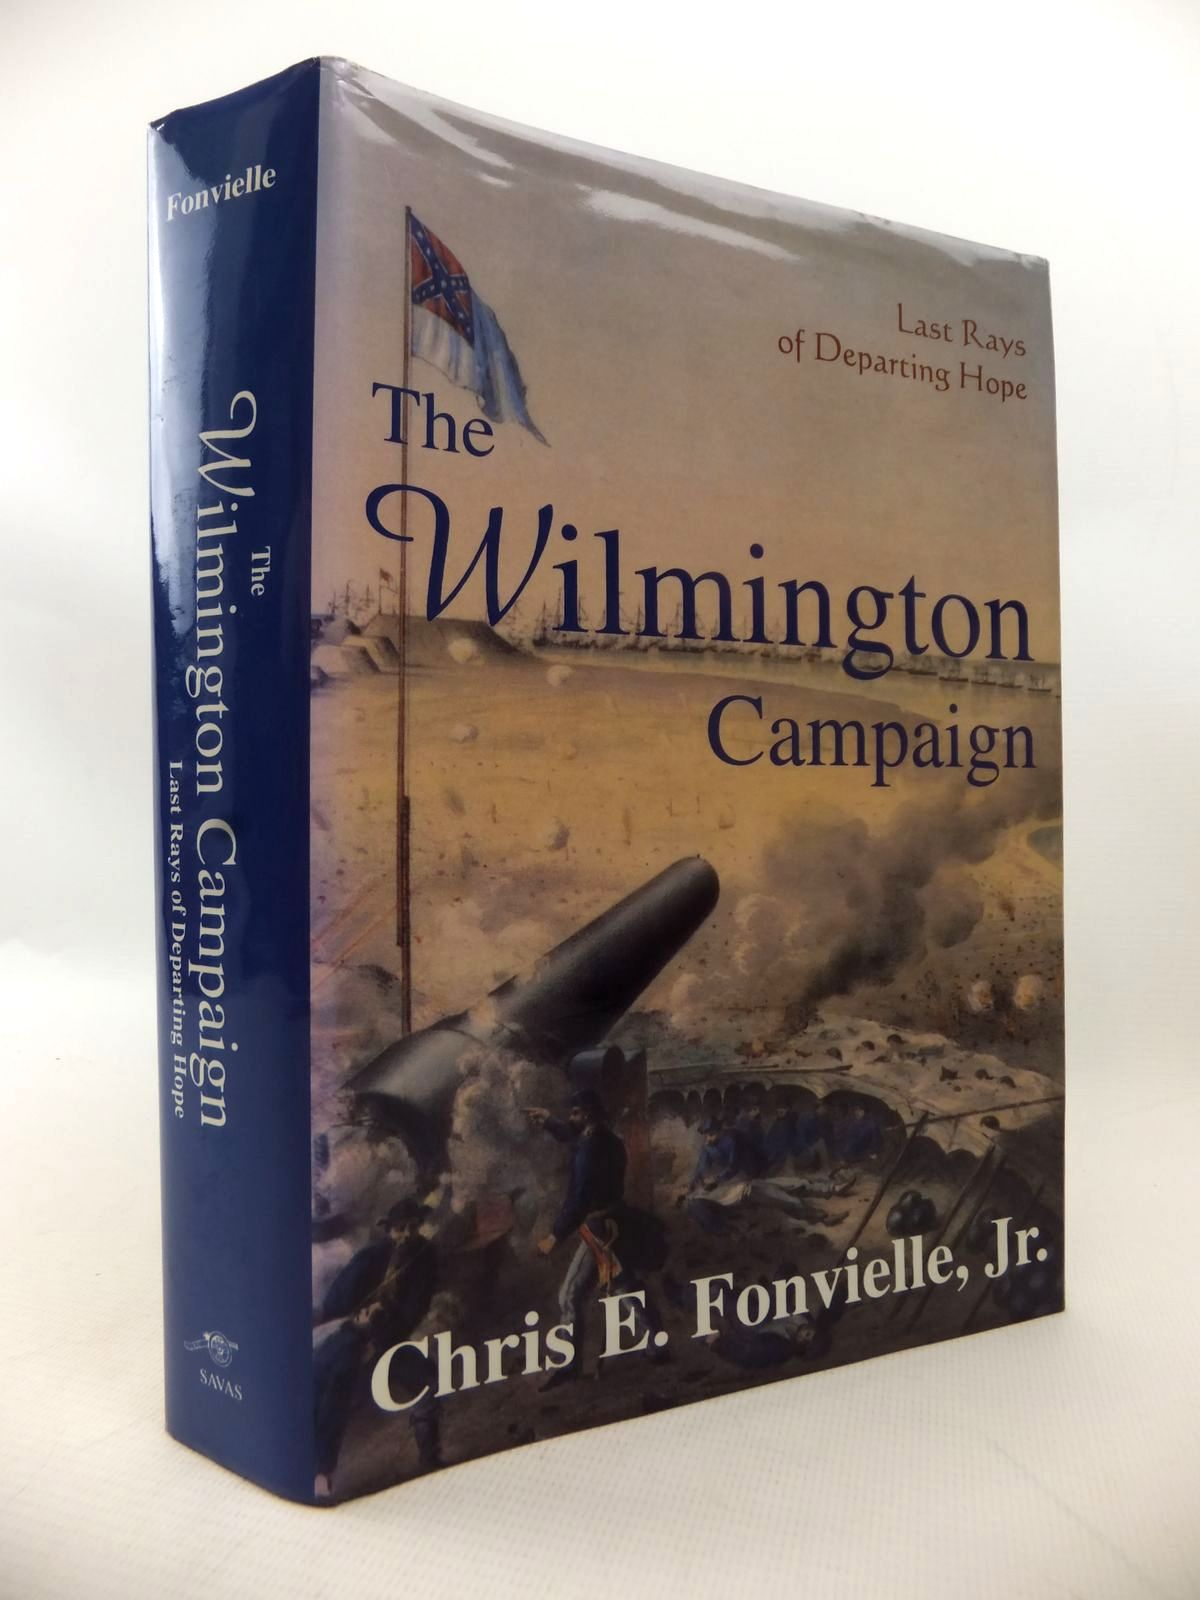 Photo of THE WILMINGTON CAMPAIGN: LAST RAYS OF DEPARTING HOPE written by Fonvielle, Chris E. published by Savas Publishing Company (STOCK CODE: 1813992)  for sale by Stella & Rose's Books